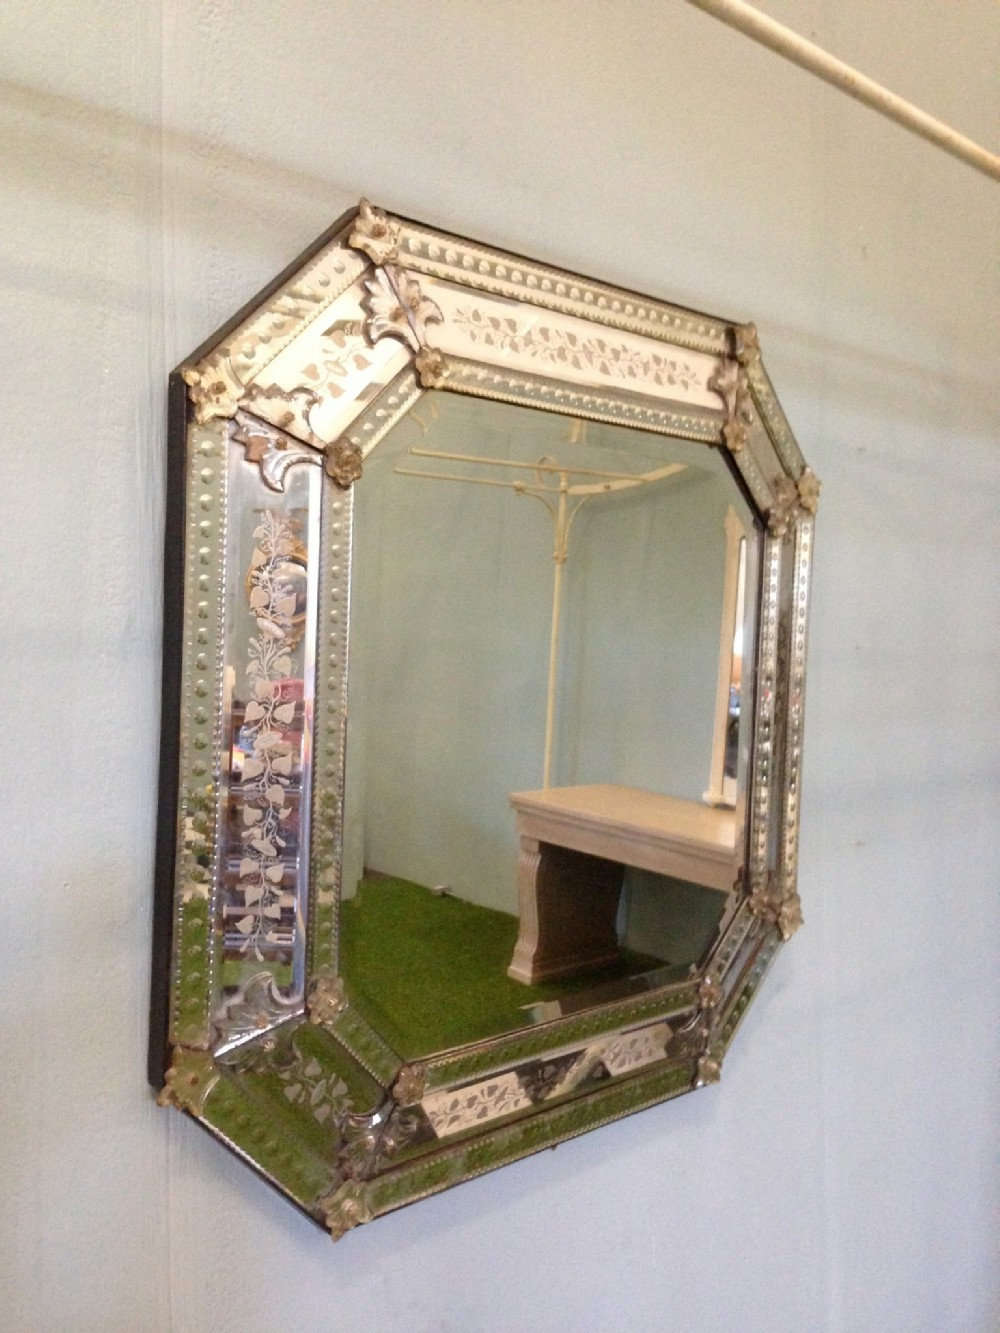 Well Liked Venetian Wall Mirrors Inside Large Octagonal Venetian Wall Mirror With Decorative Detailed (View 15 of 20)